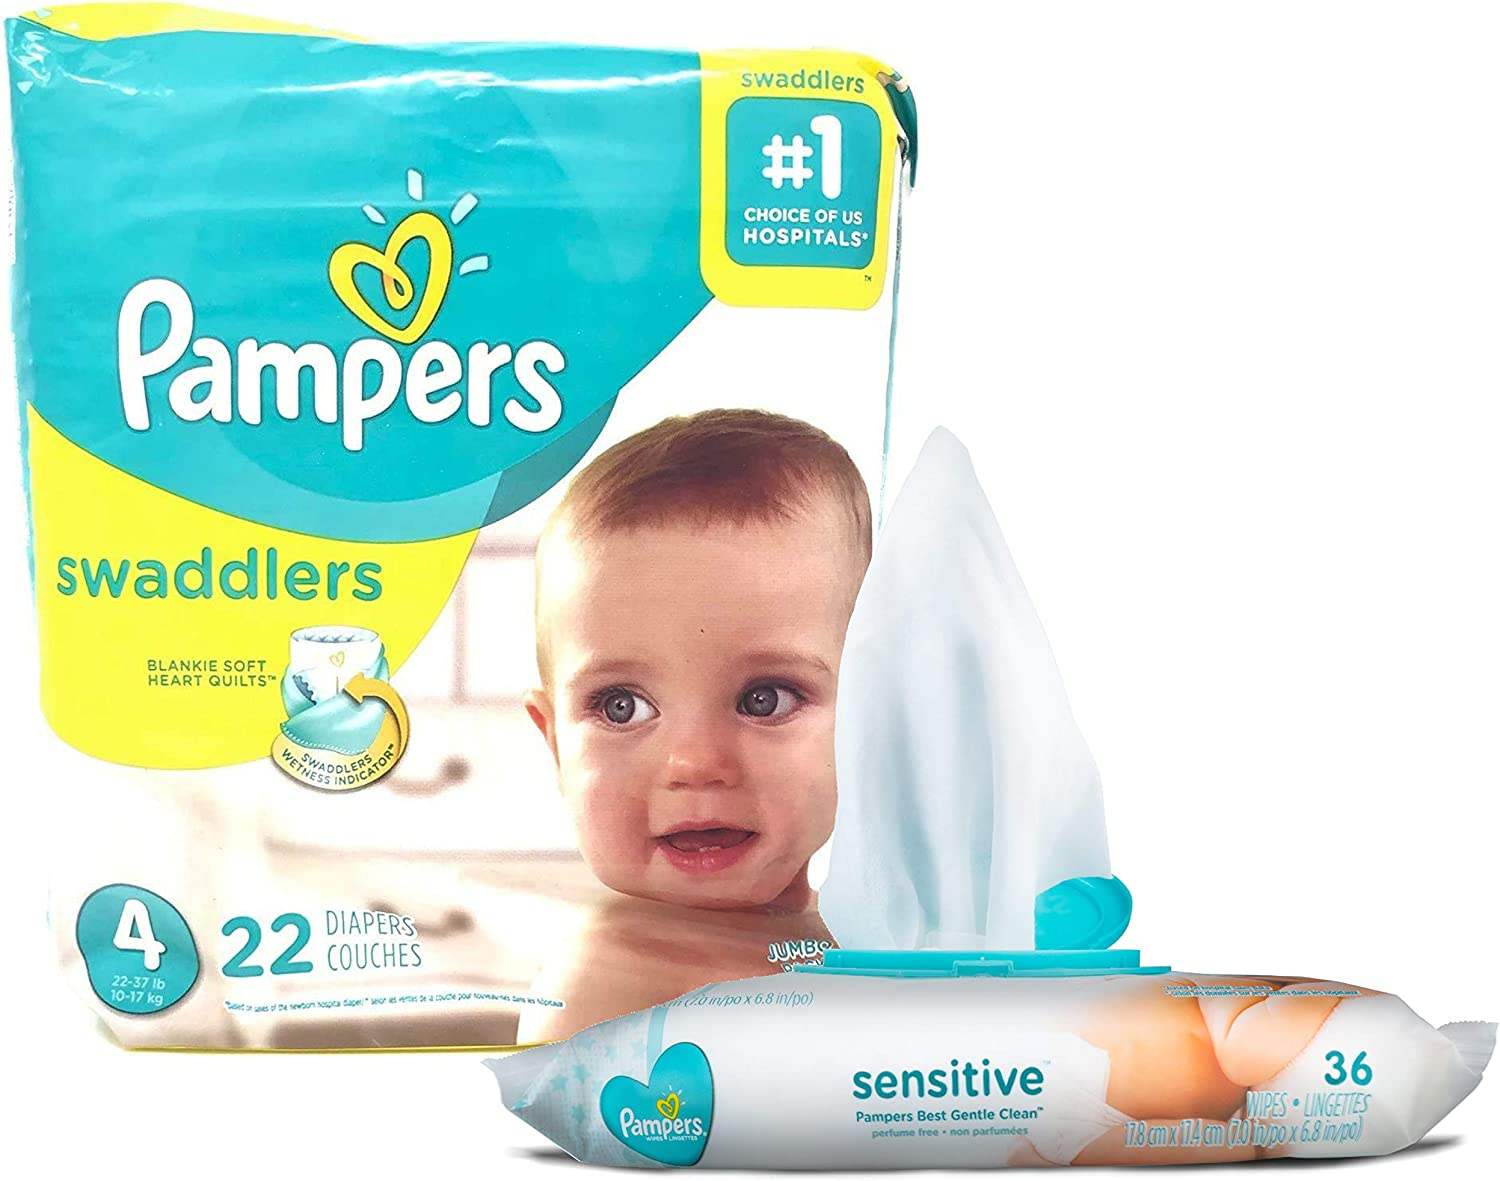 Pampers Swaddlers Disposable Size 4 Diapers (22 Count) Bundle with 36 Pampers Sensitive Care Baby Wipes